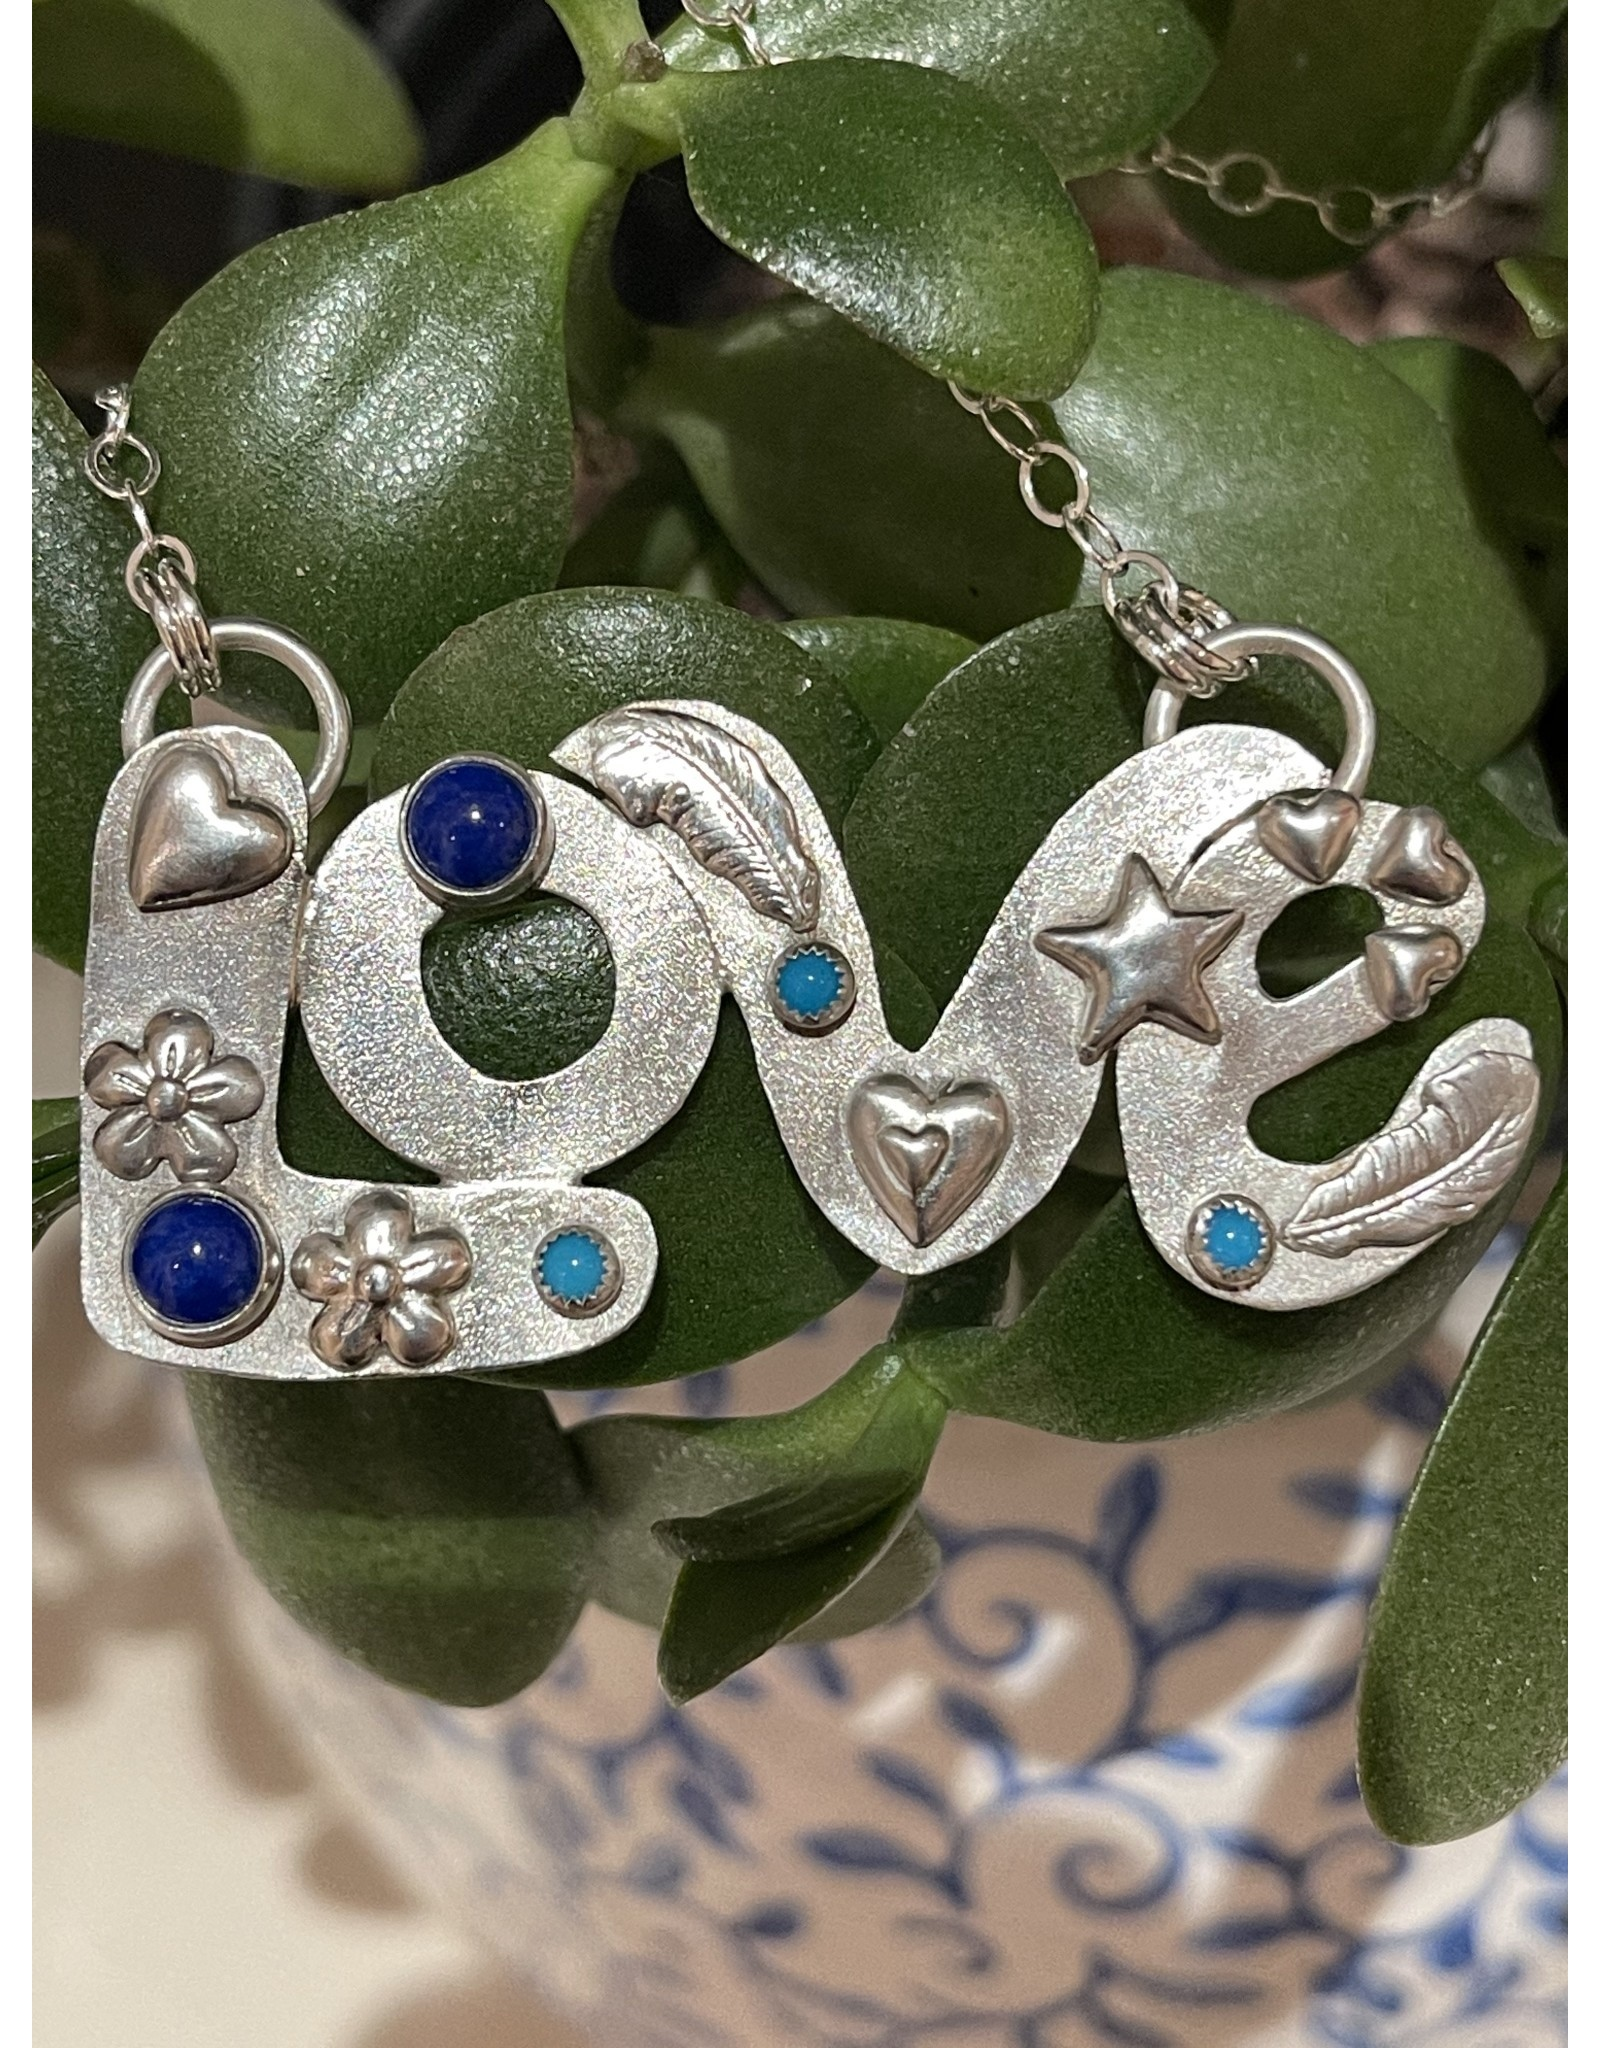 Annette Colby - Jeweler Sterling Love Lapis Turquoise Chain Necklace - Annette Colby